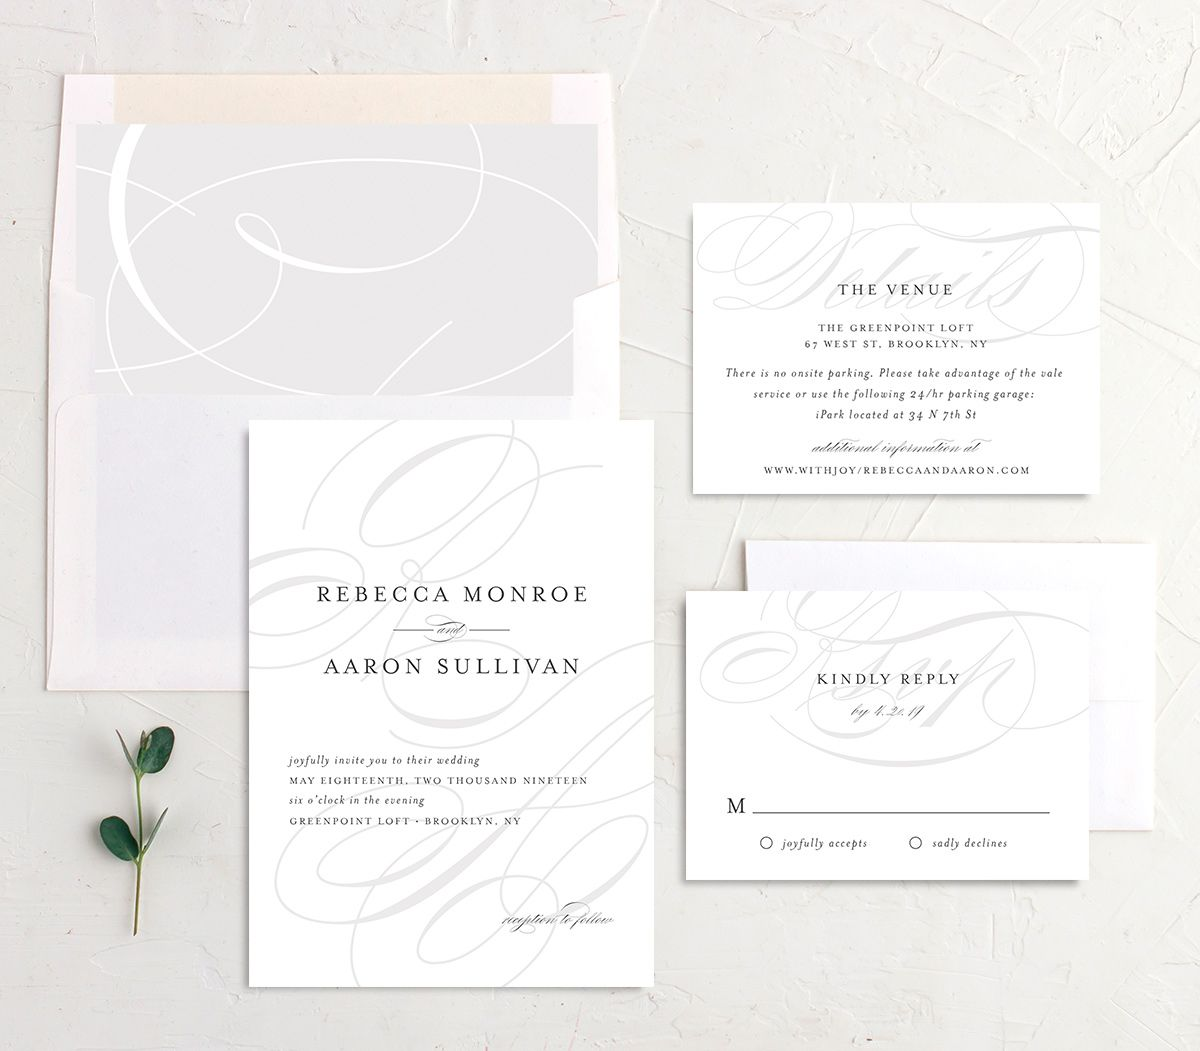 elegantly initialed wedding invitation stationery suite